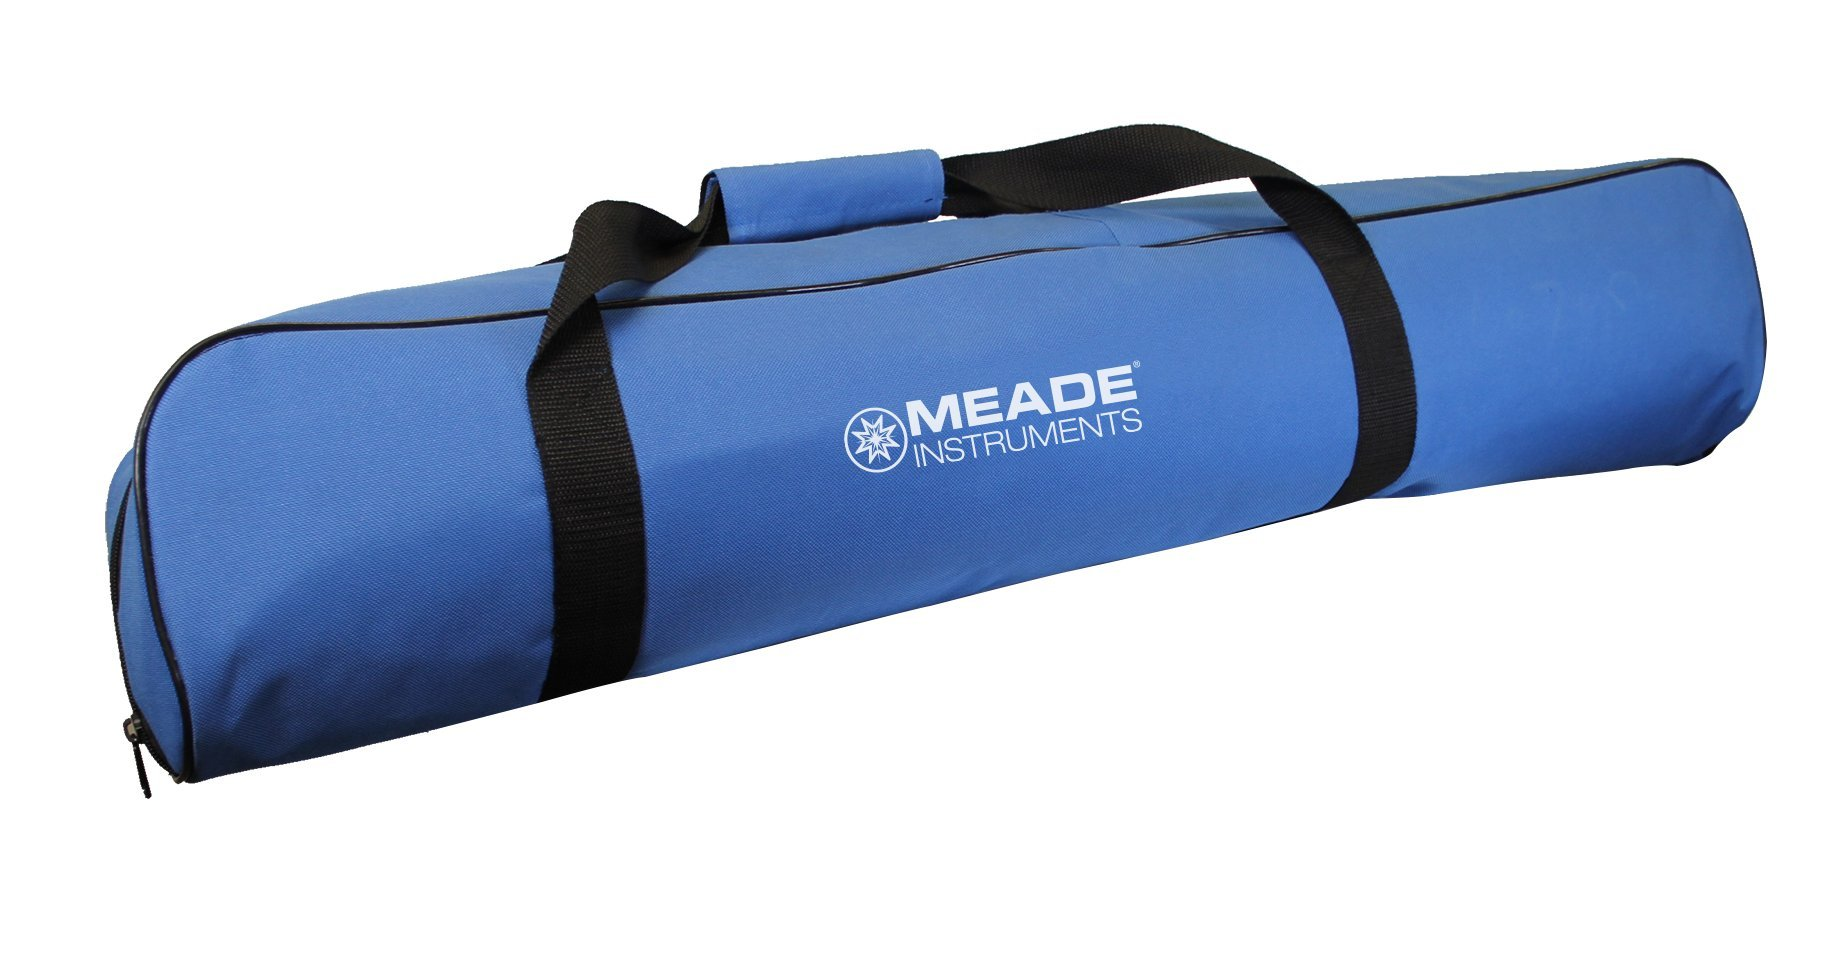 Meade Instruments Polaris Carry Bag, for 70-80-90mm Telescope - Blue (616001)